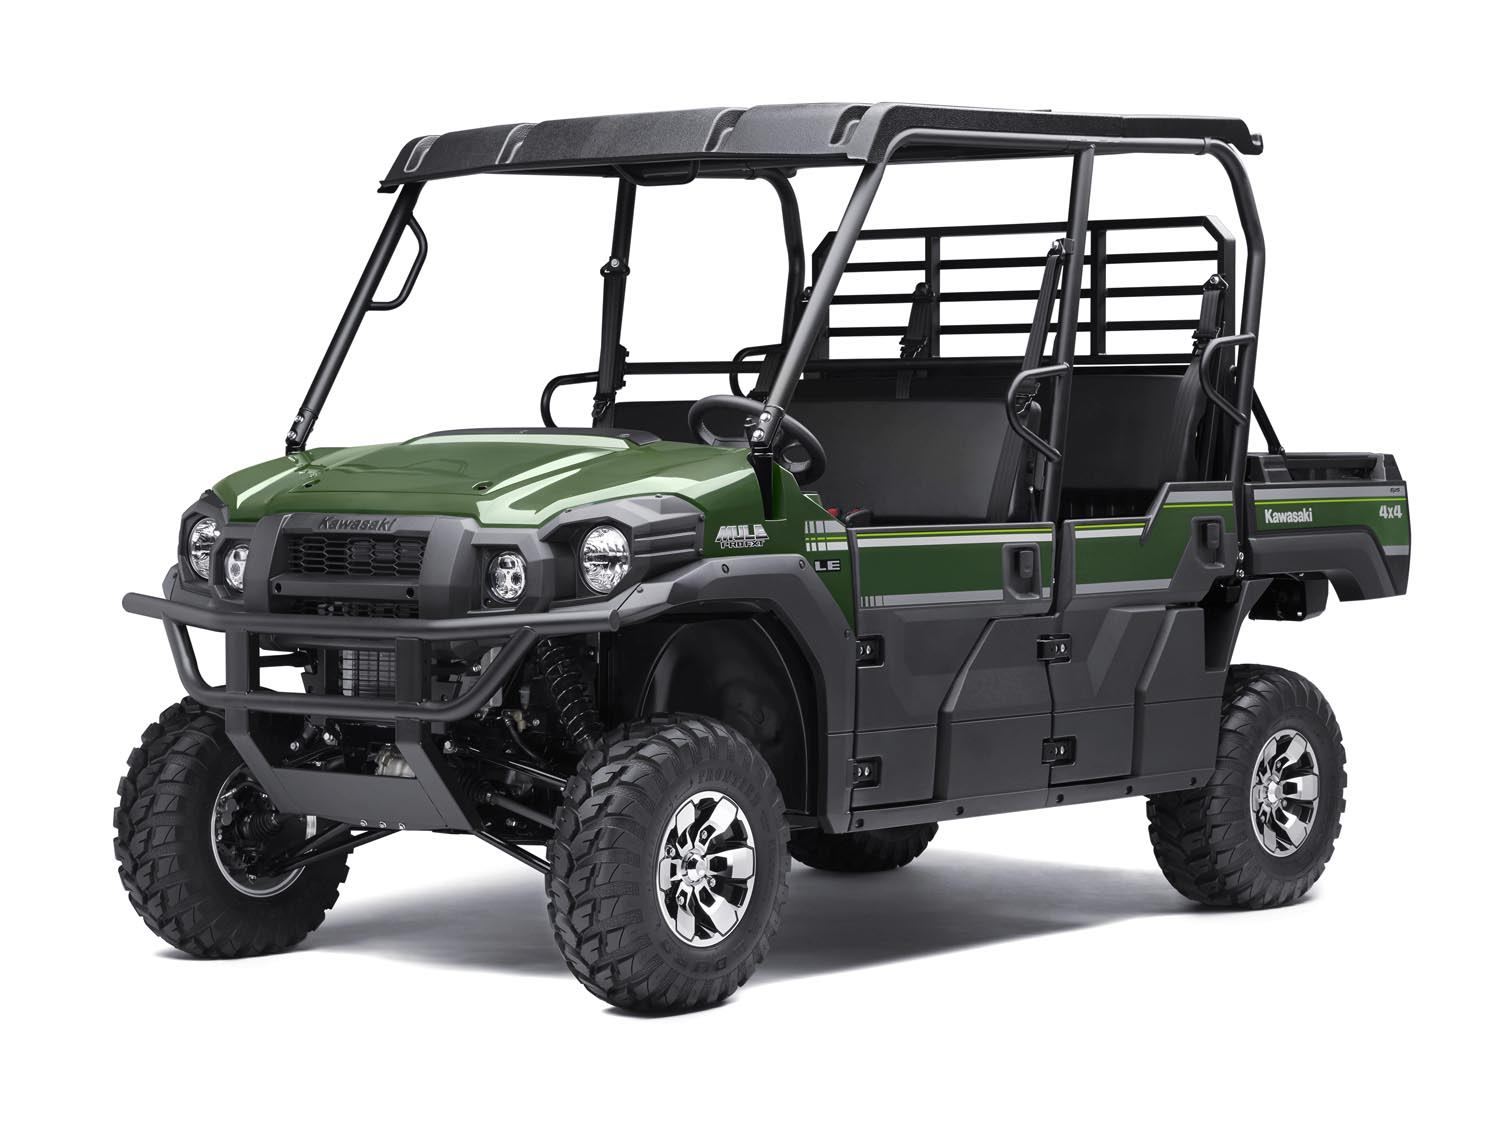 2015 Kawasaki Mule PRO-FXT™ EPS LE in North Reading, Massachusetts - Photo 33